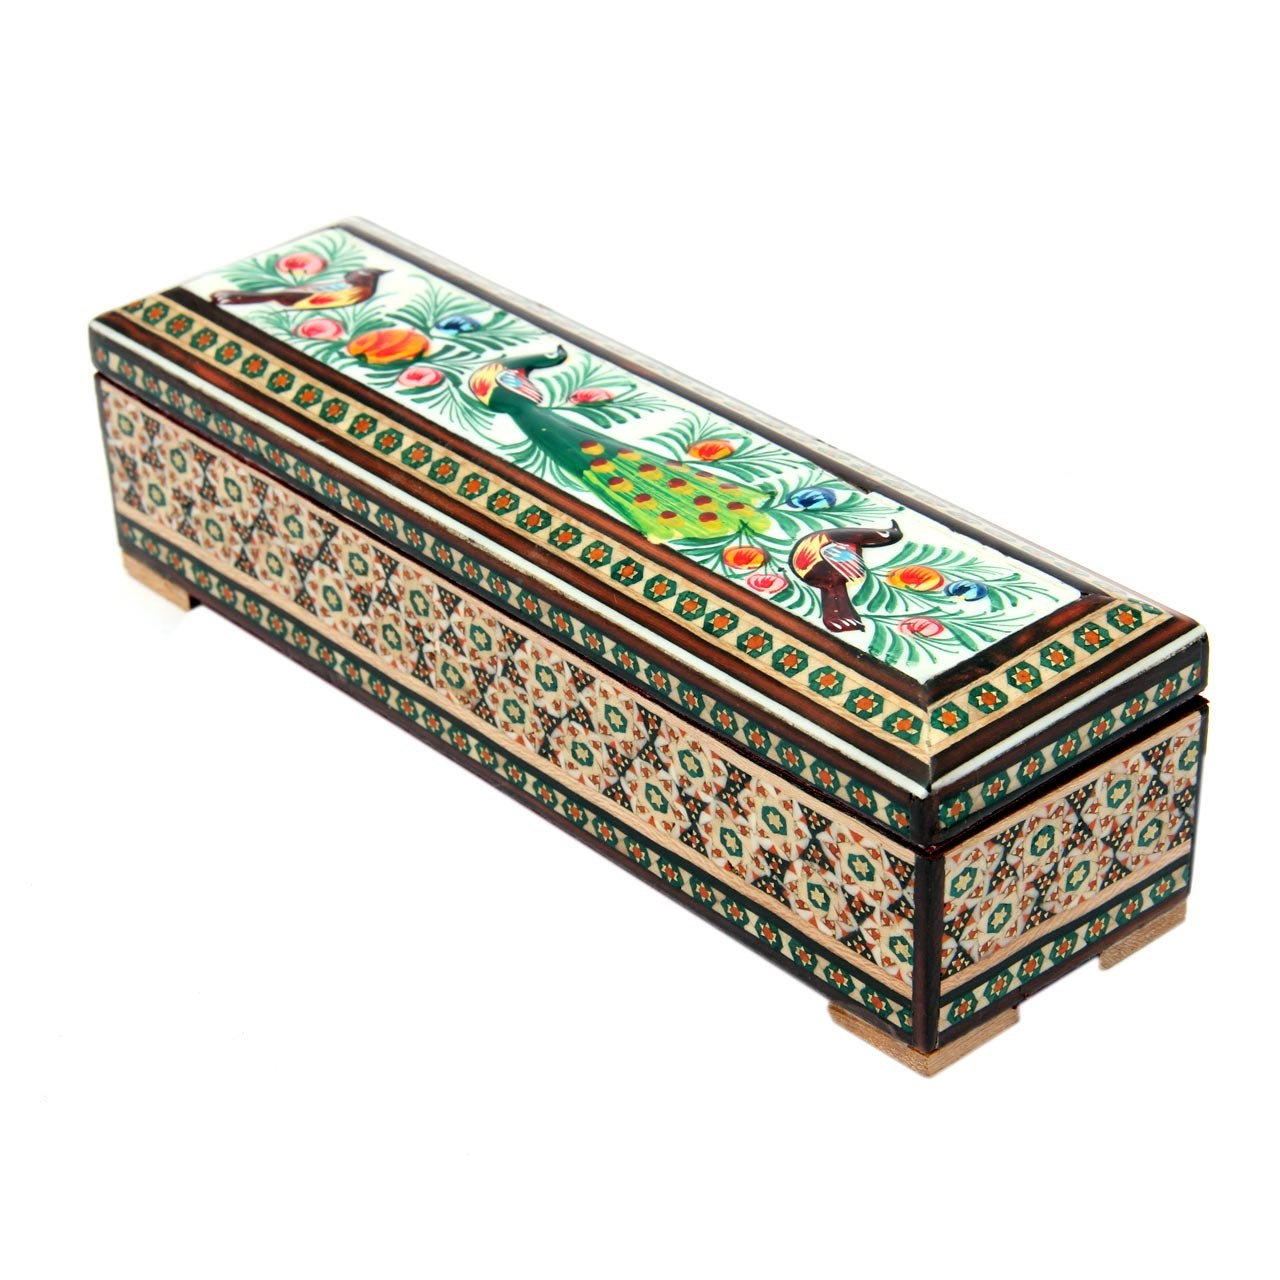 Inlay handicraft watch box of Market Land, code MKH96